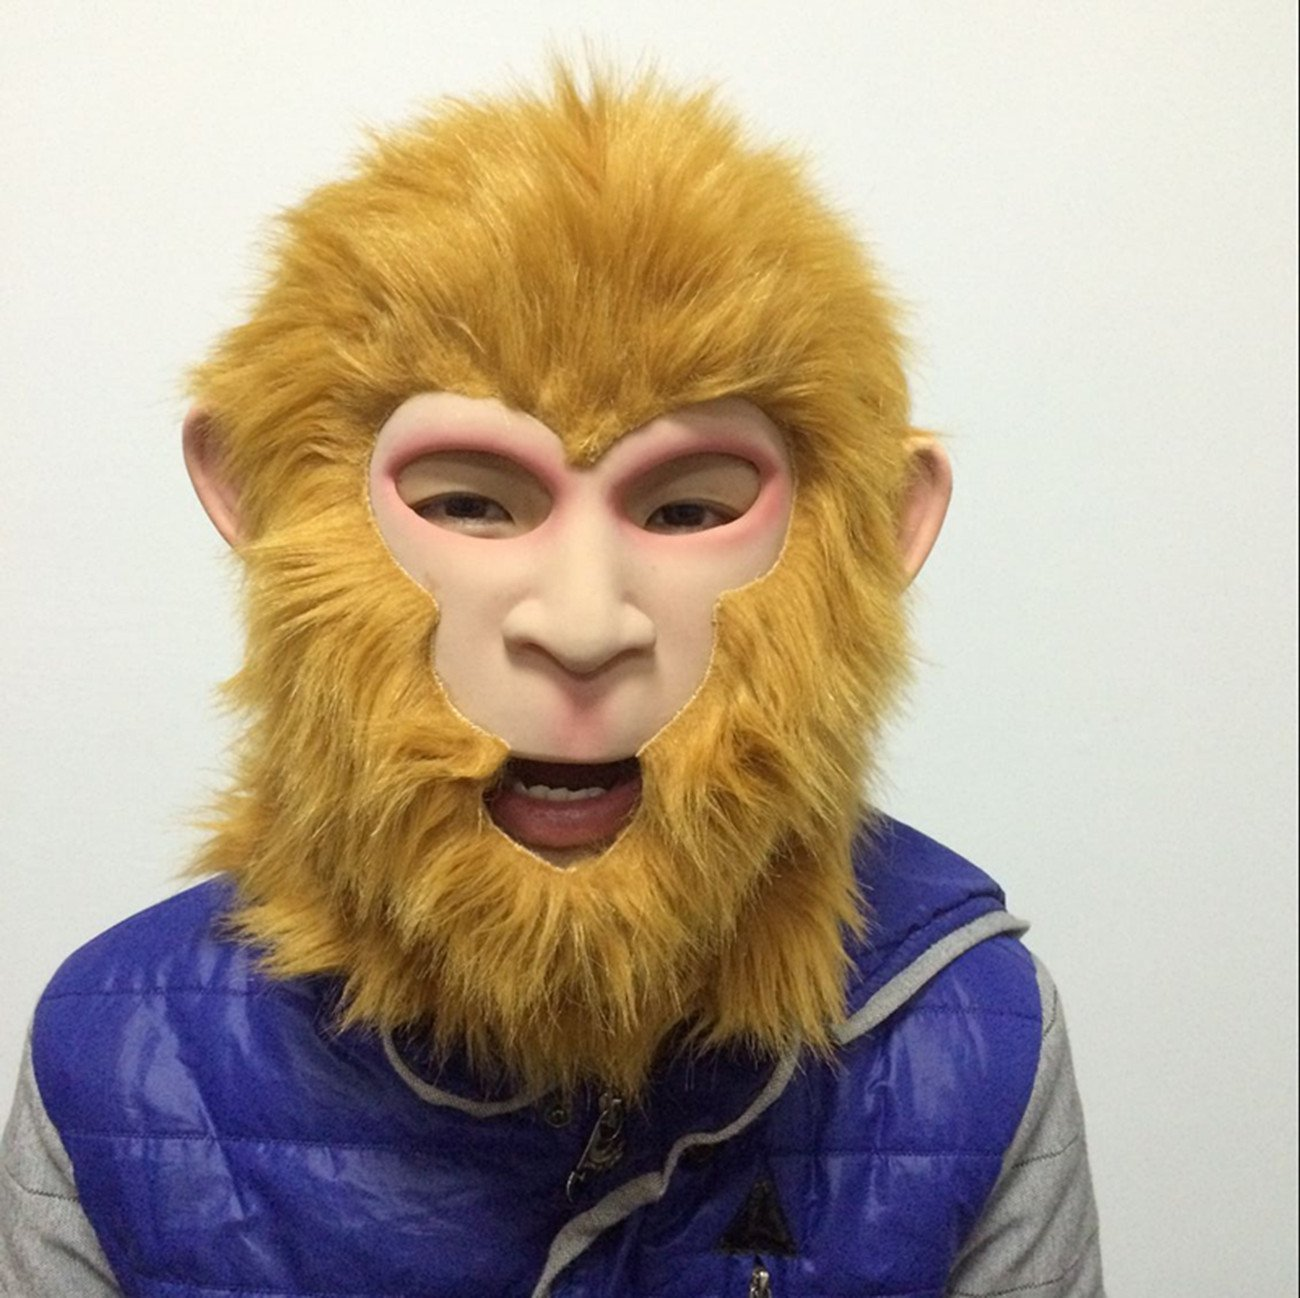 Monkey King Latex Full Head Mask Halloween,Costume,Easter,Cosplay by MaskShow by Maskshow